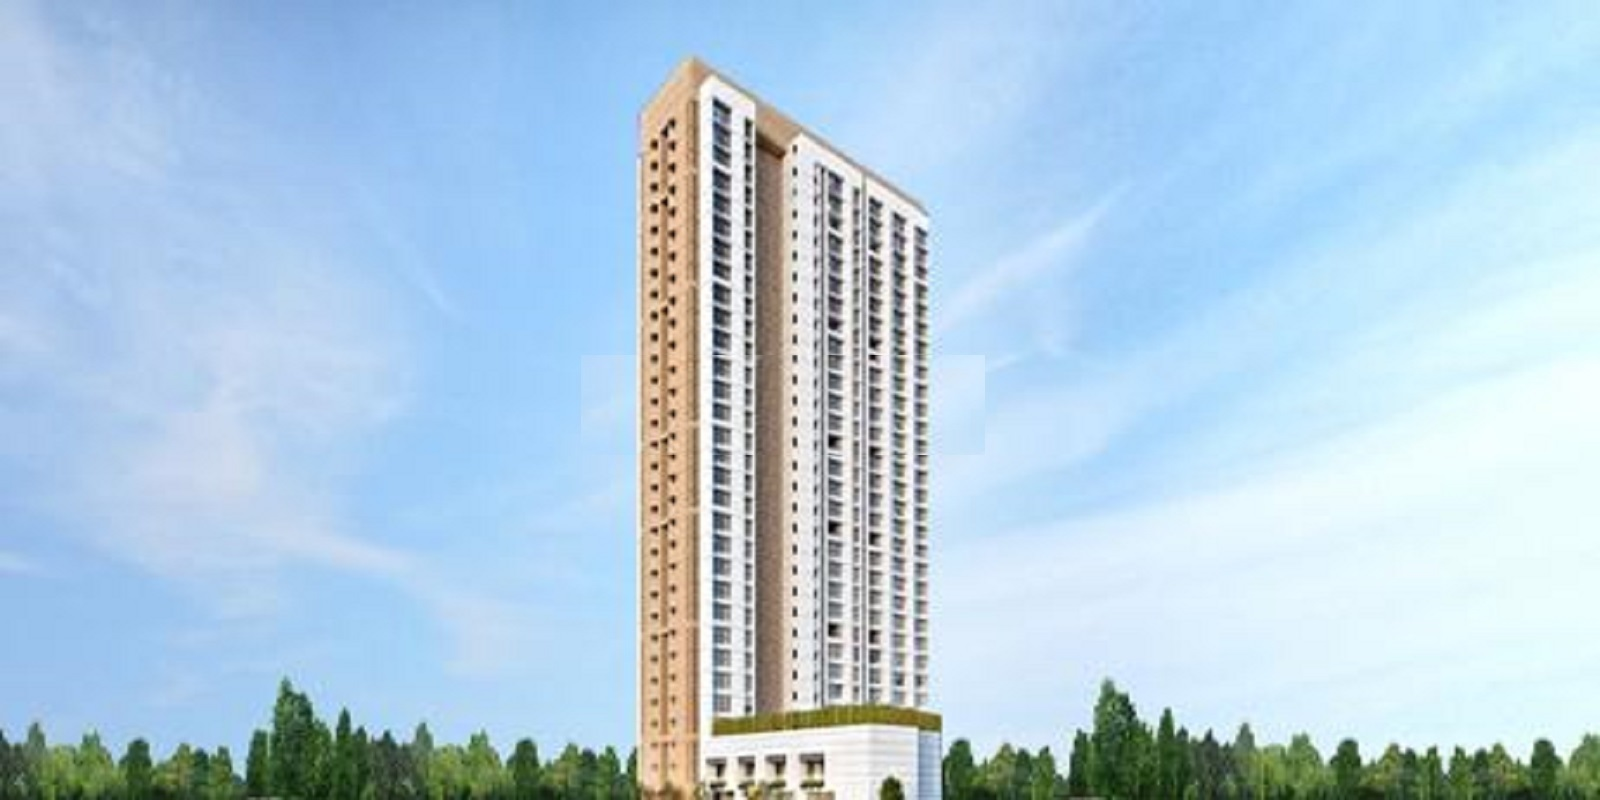 lodha quality home tower 5 project project large image1